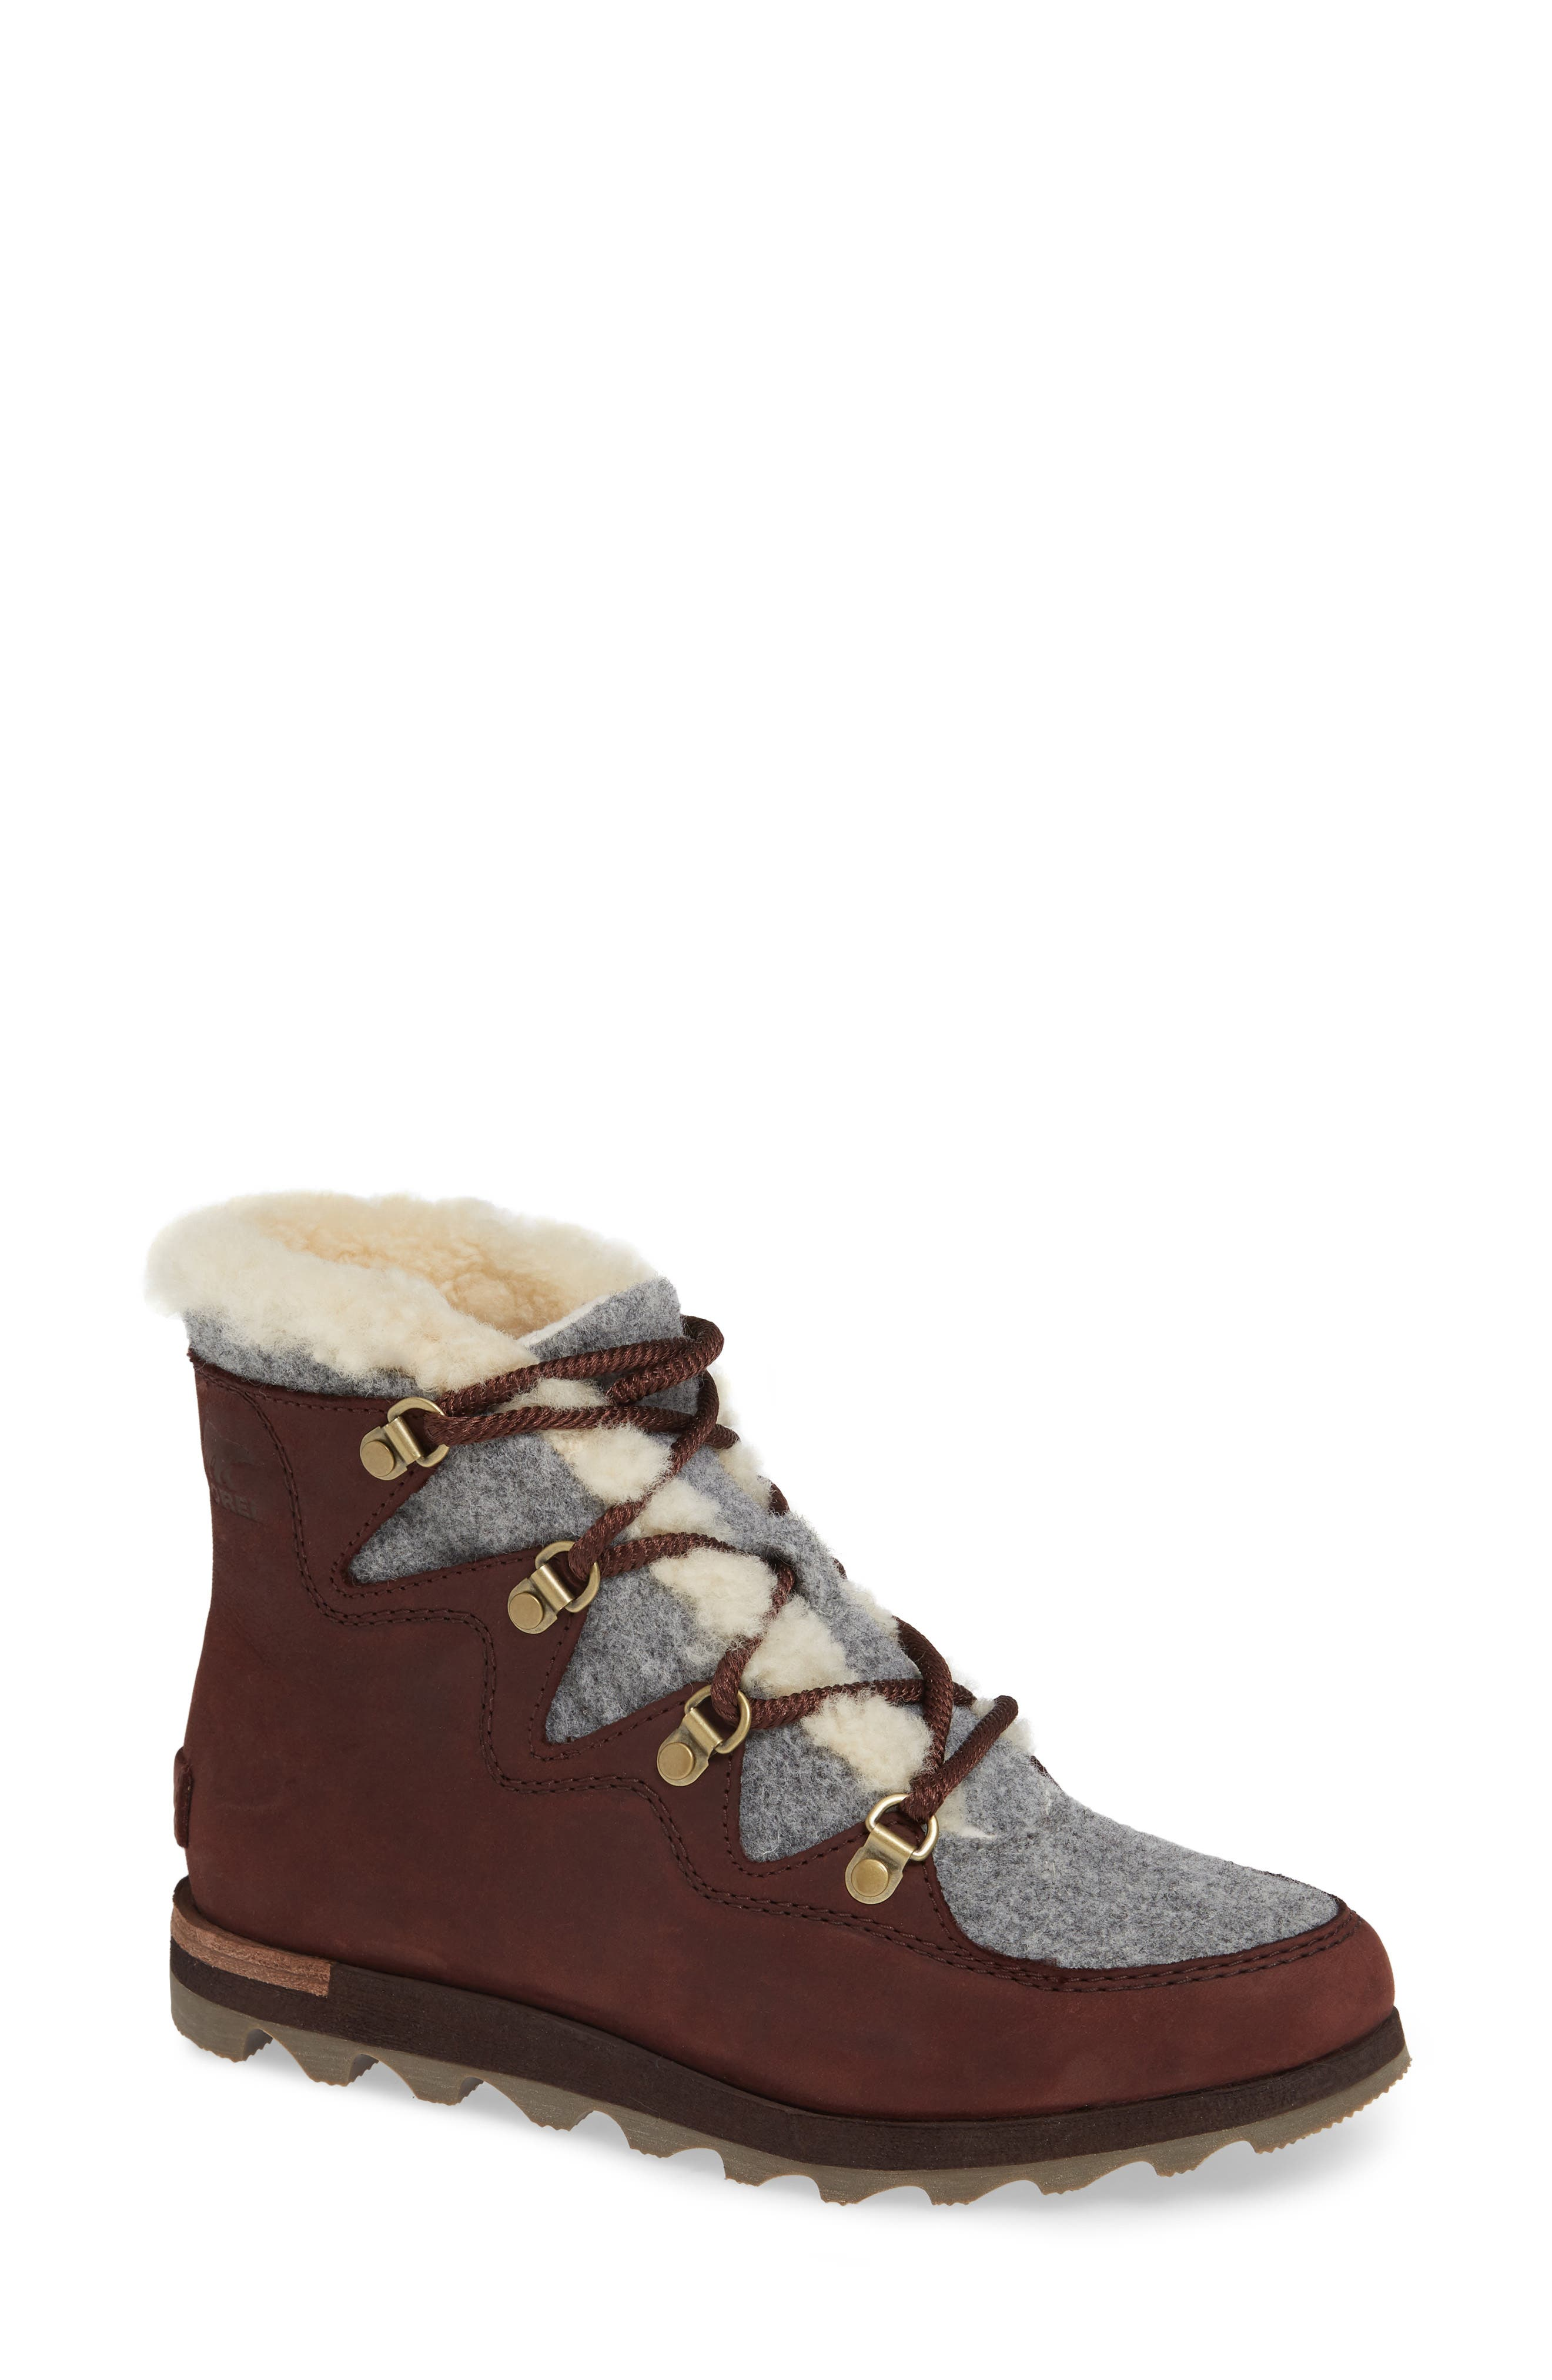 Sneakchic Alpine Holiday Waterproof Bootie,                             Main thumbnail 1, color,                             CATTAIL/ GUM